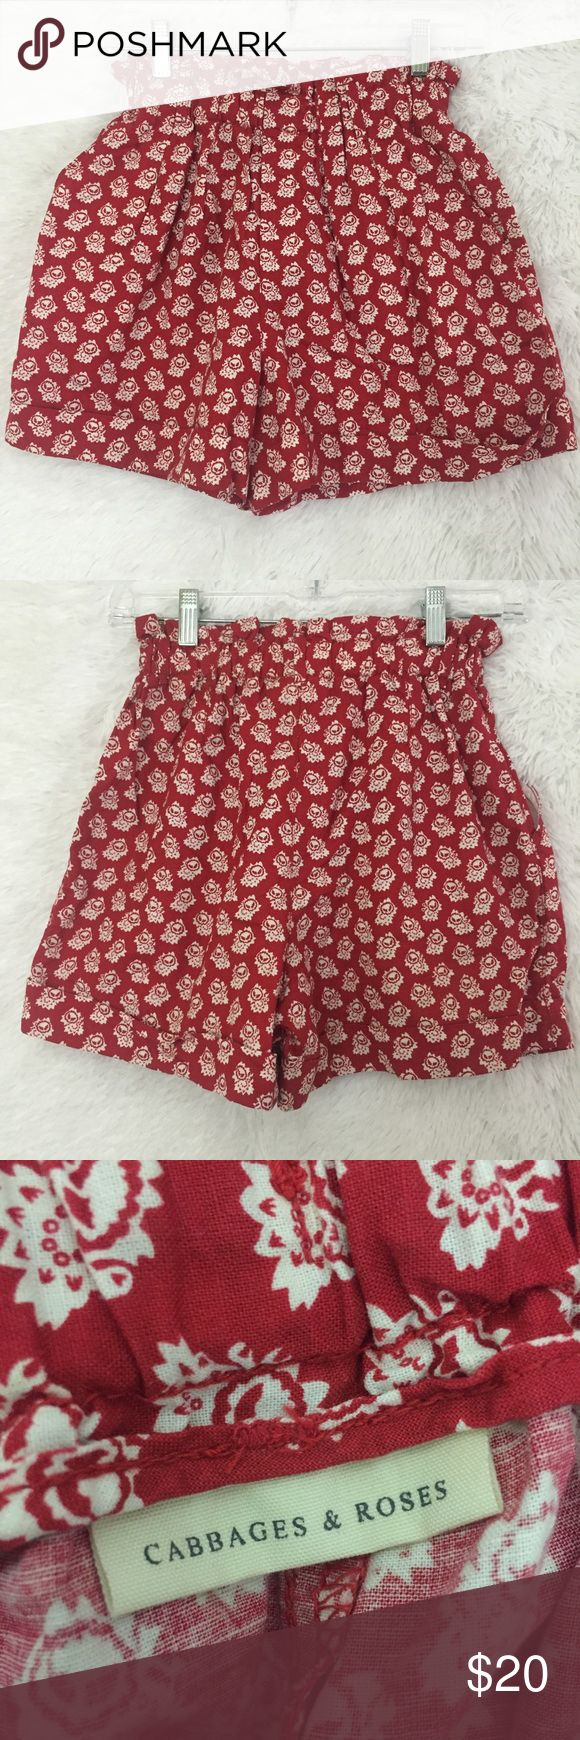 """Cabbages & Roses shorts by Uniqlo size sm (#136) These Cabbages and Roses by Uniqlo shorts are so cute.  They are a true red color with white flowers all over.  They are a size small with waist measuring 11-14"""" (unstretched to stretched), and a length of 14"""". Uniqlo Shorts"""